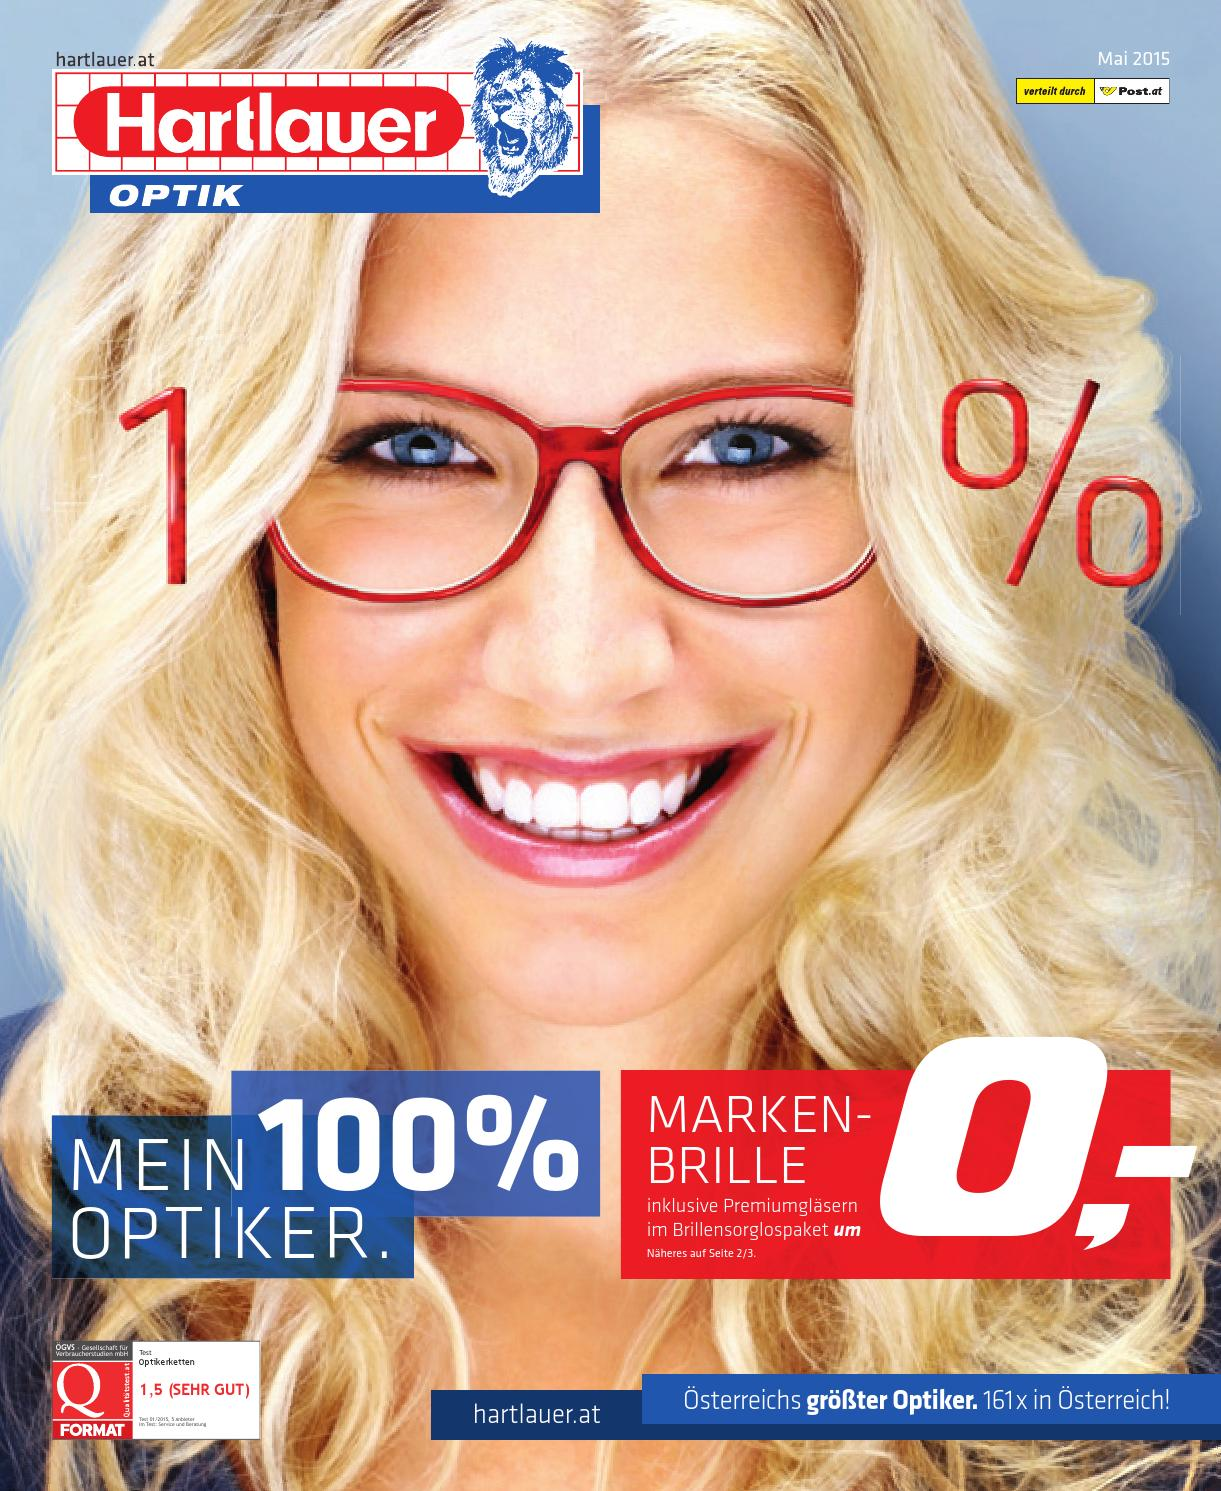 Test Optiker 2015 Hartlauer Kw19 By Russmedia Digital Gmbh Issuu